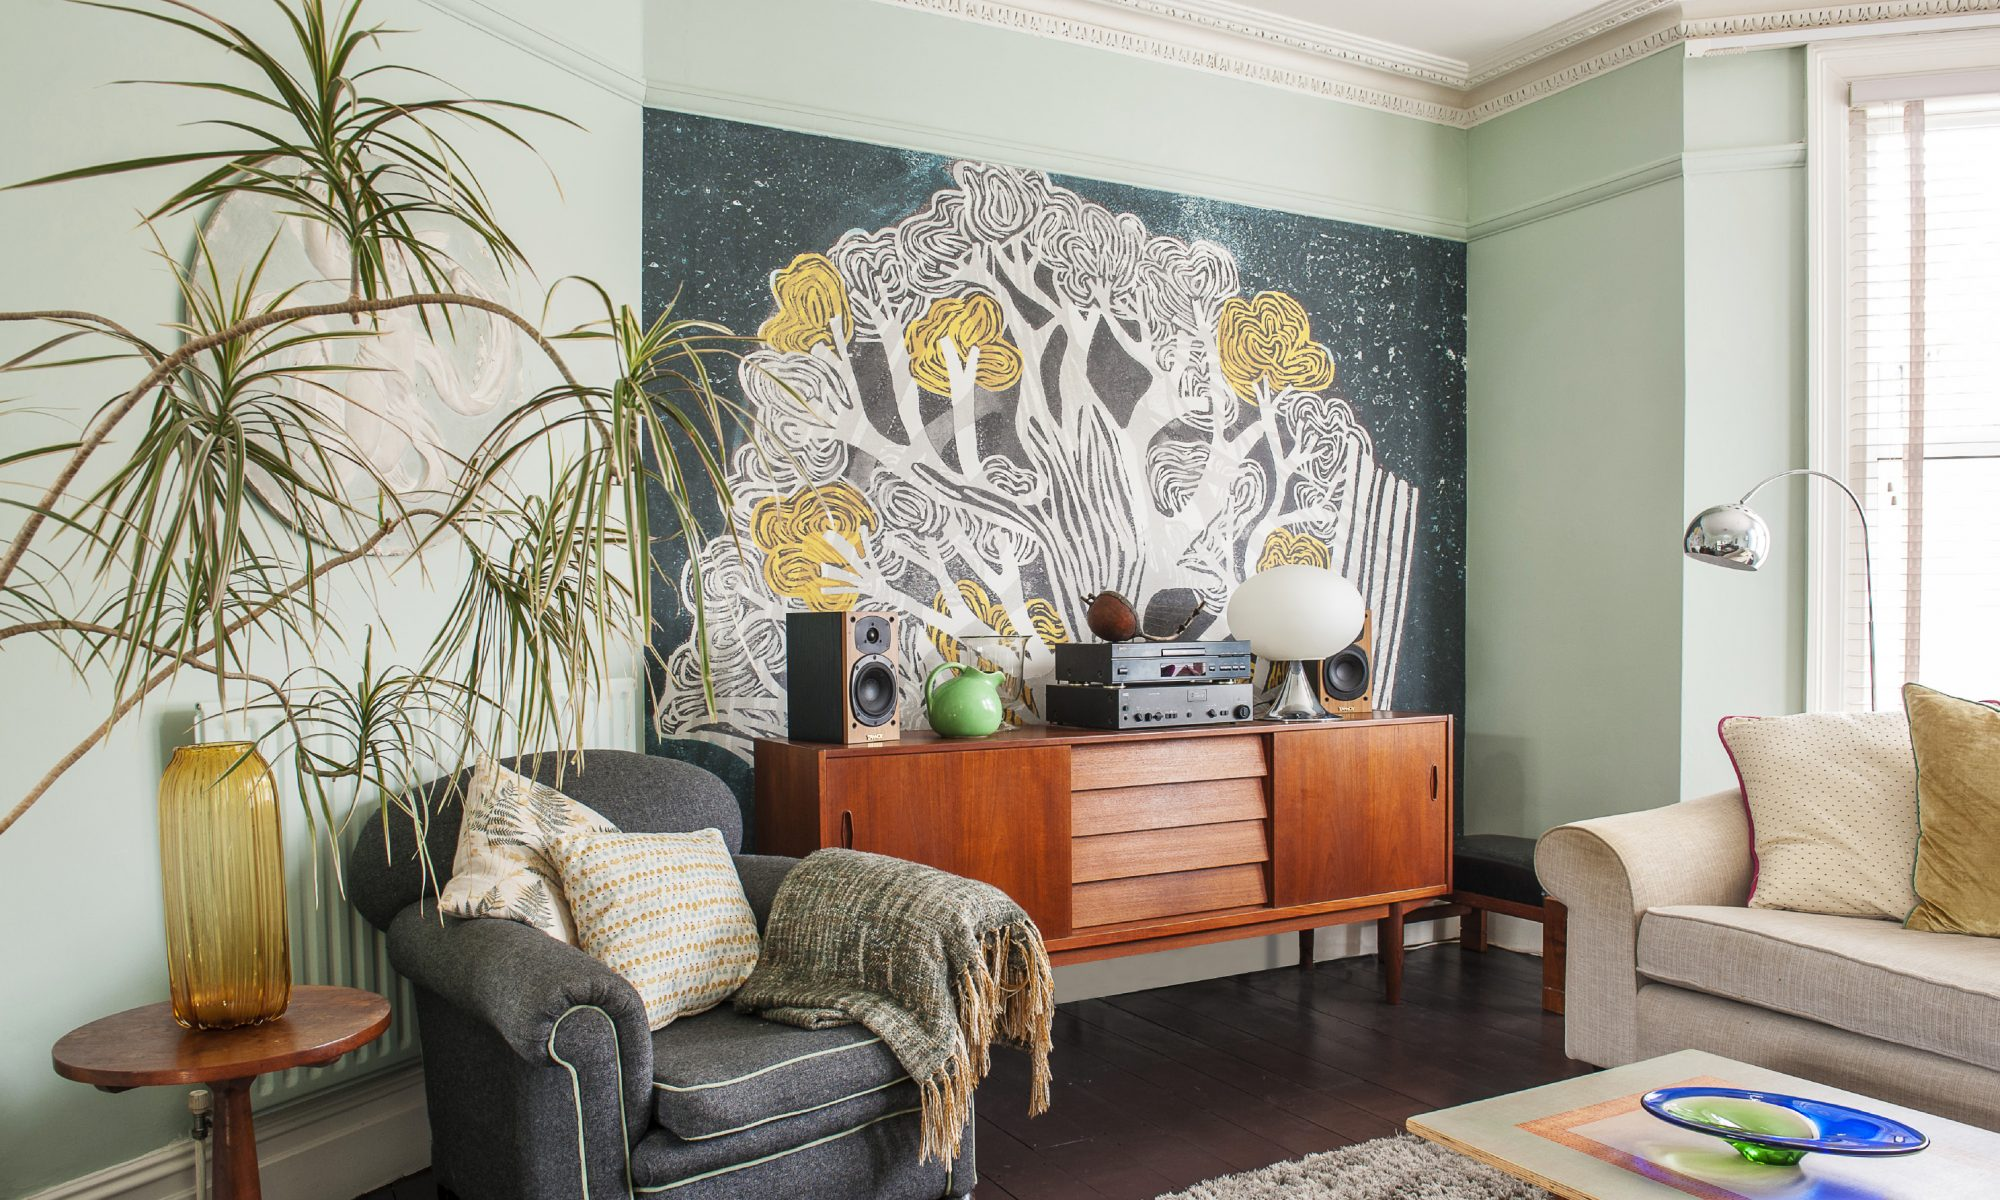 Ten years of DIY and the refined eye of a renowned wallpaper designer has transformed a wrecked house into an oasis of calm elegance